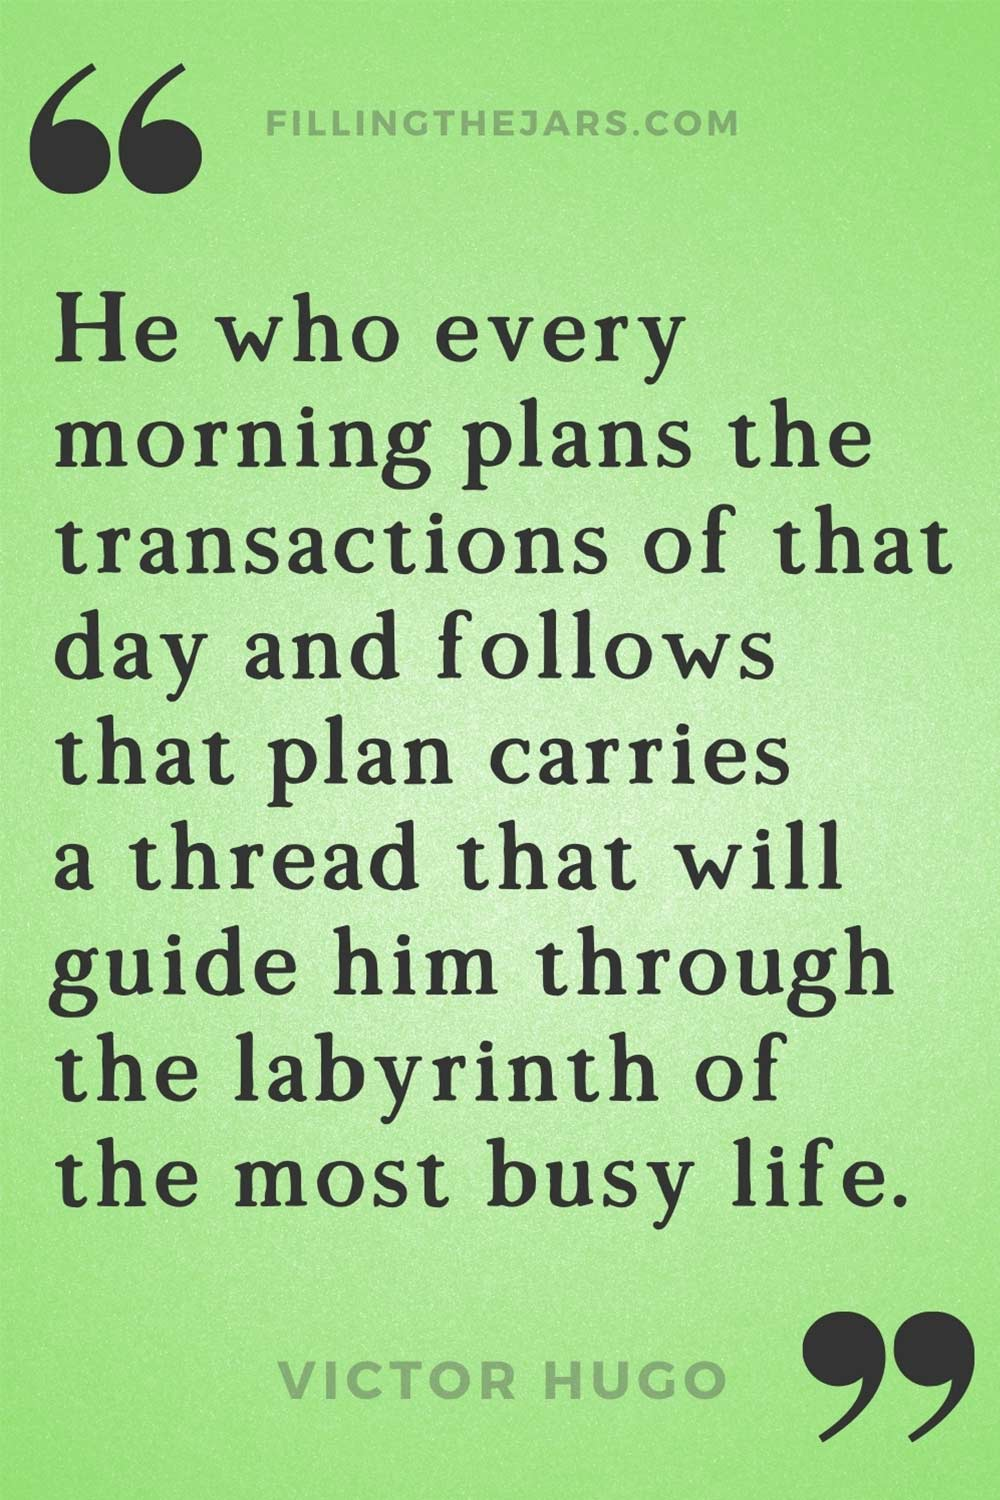 Victor Hugo plan the transactions of the day and follow the plan quote on green background.